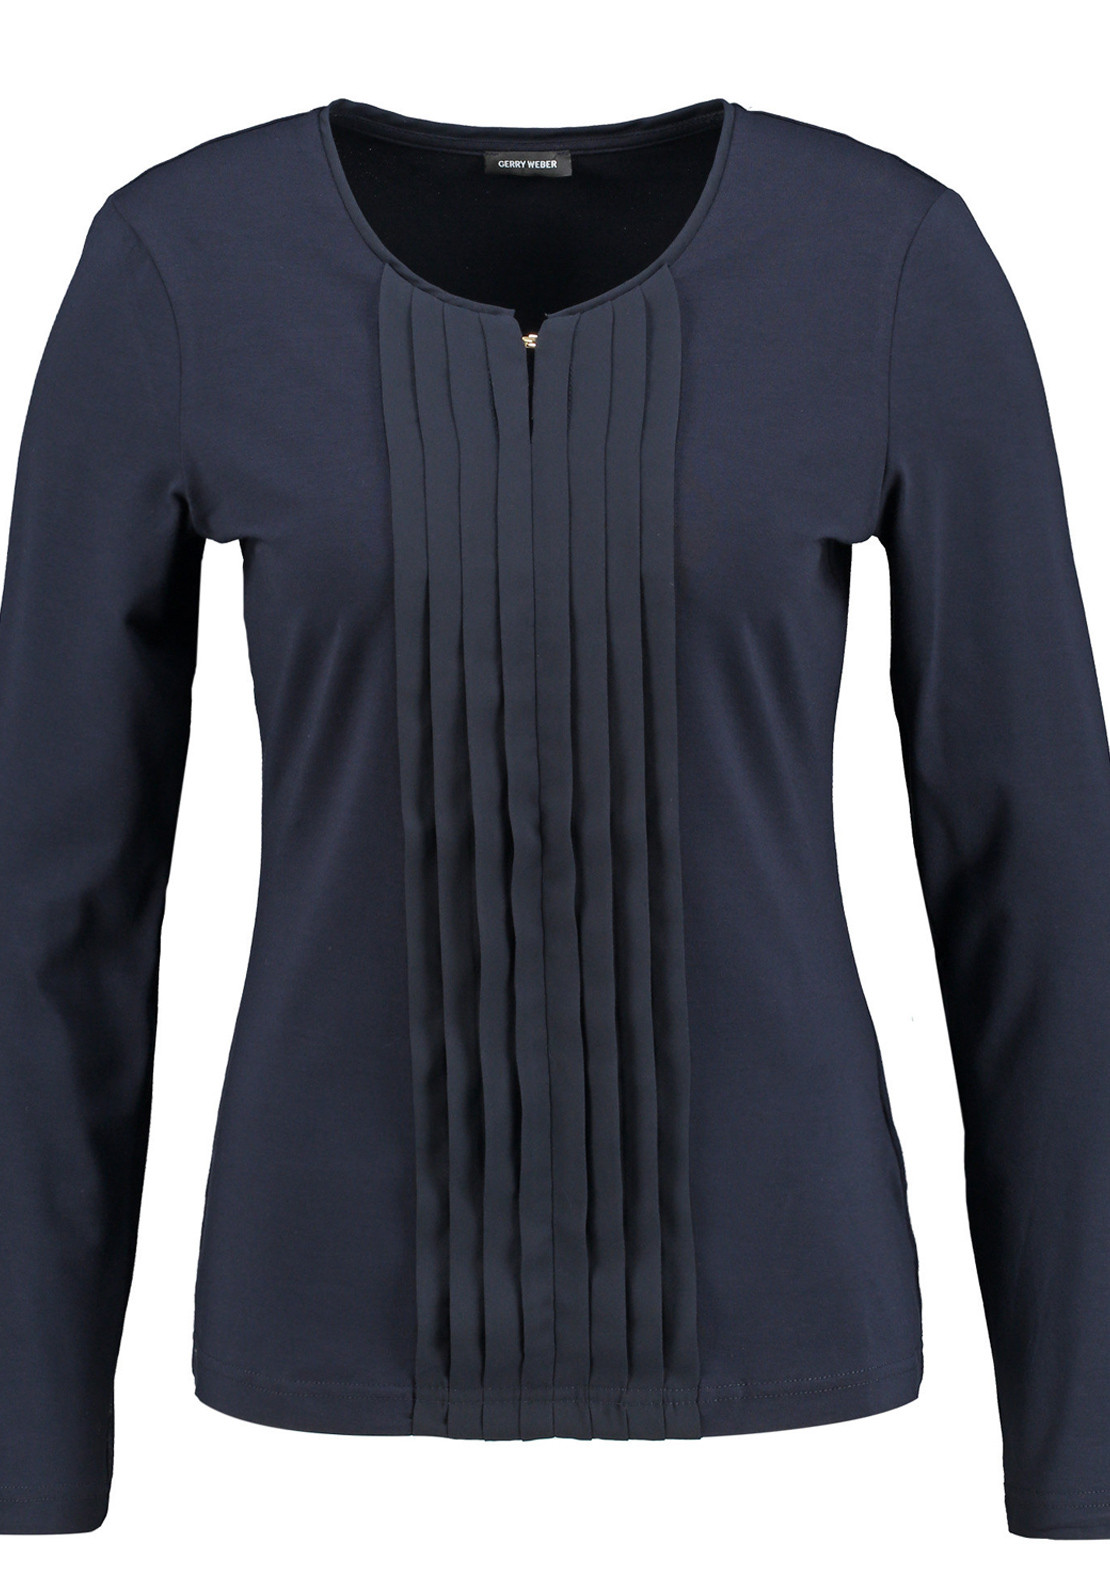 Gerry Weber Pleated Panel Long Sleeve T-Shirt, Navy